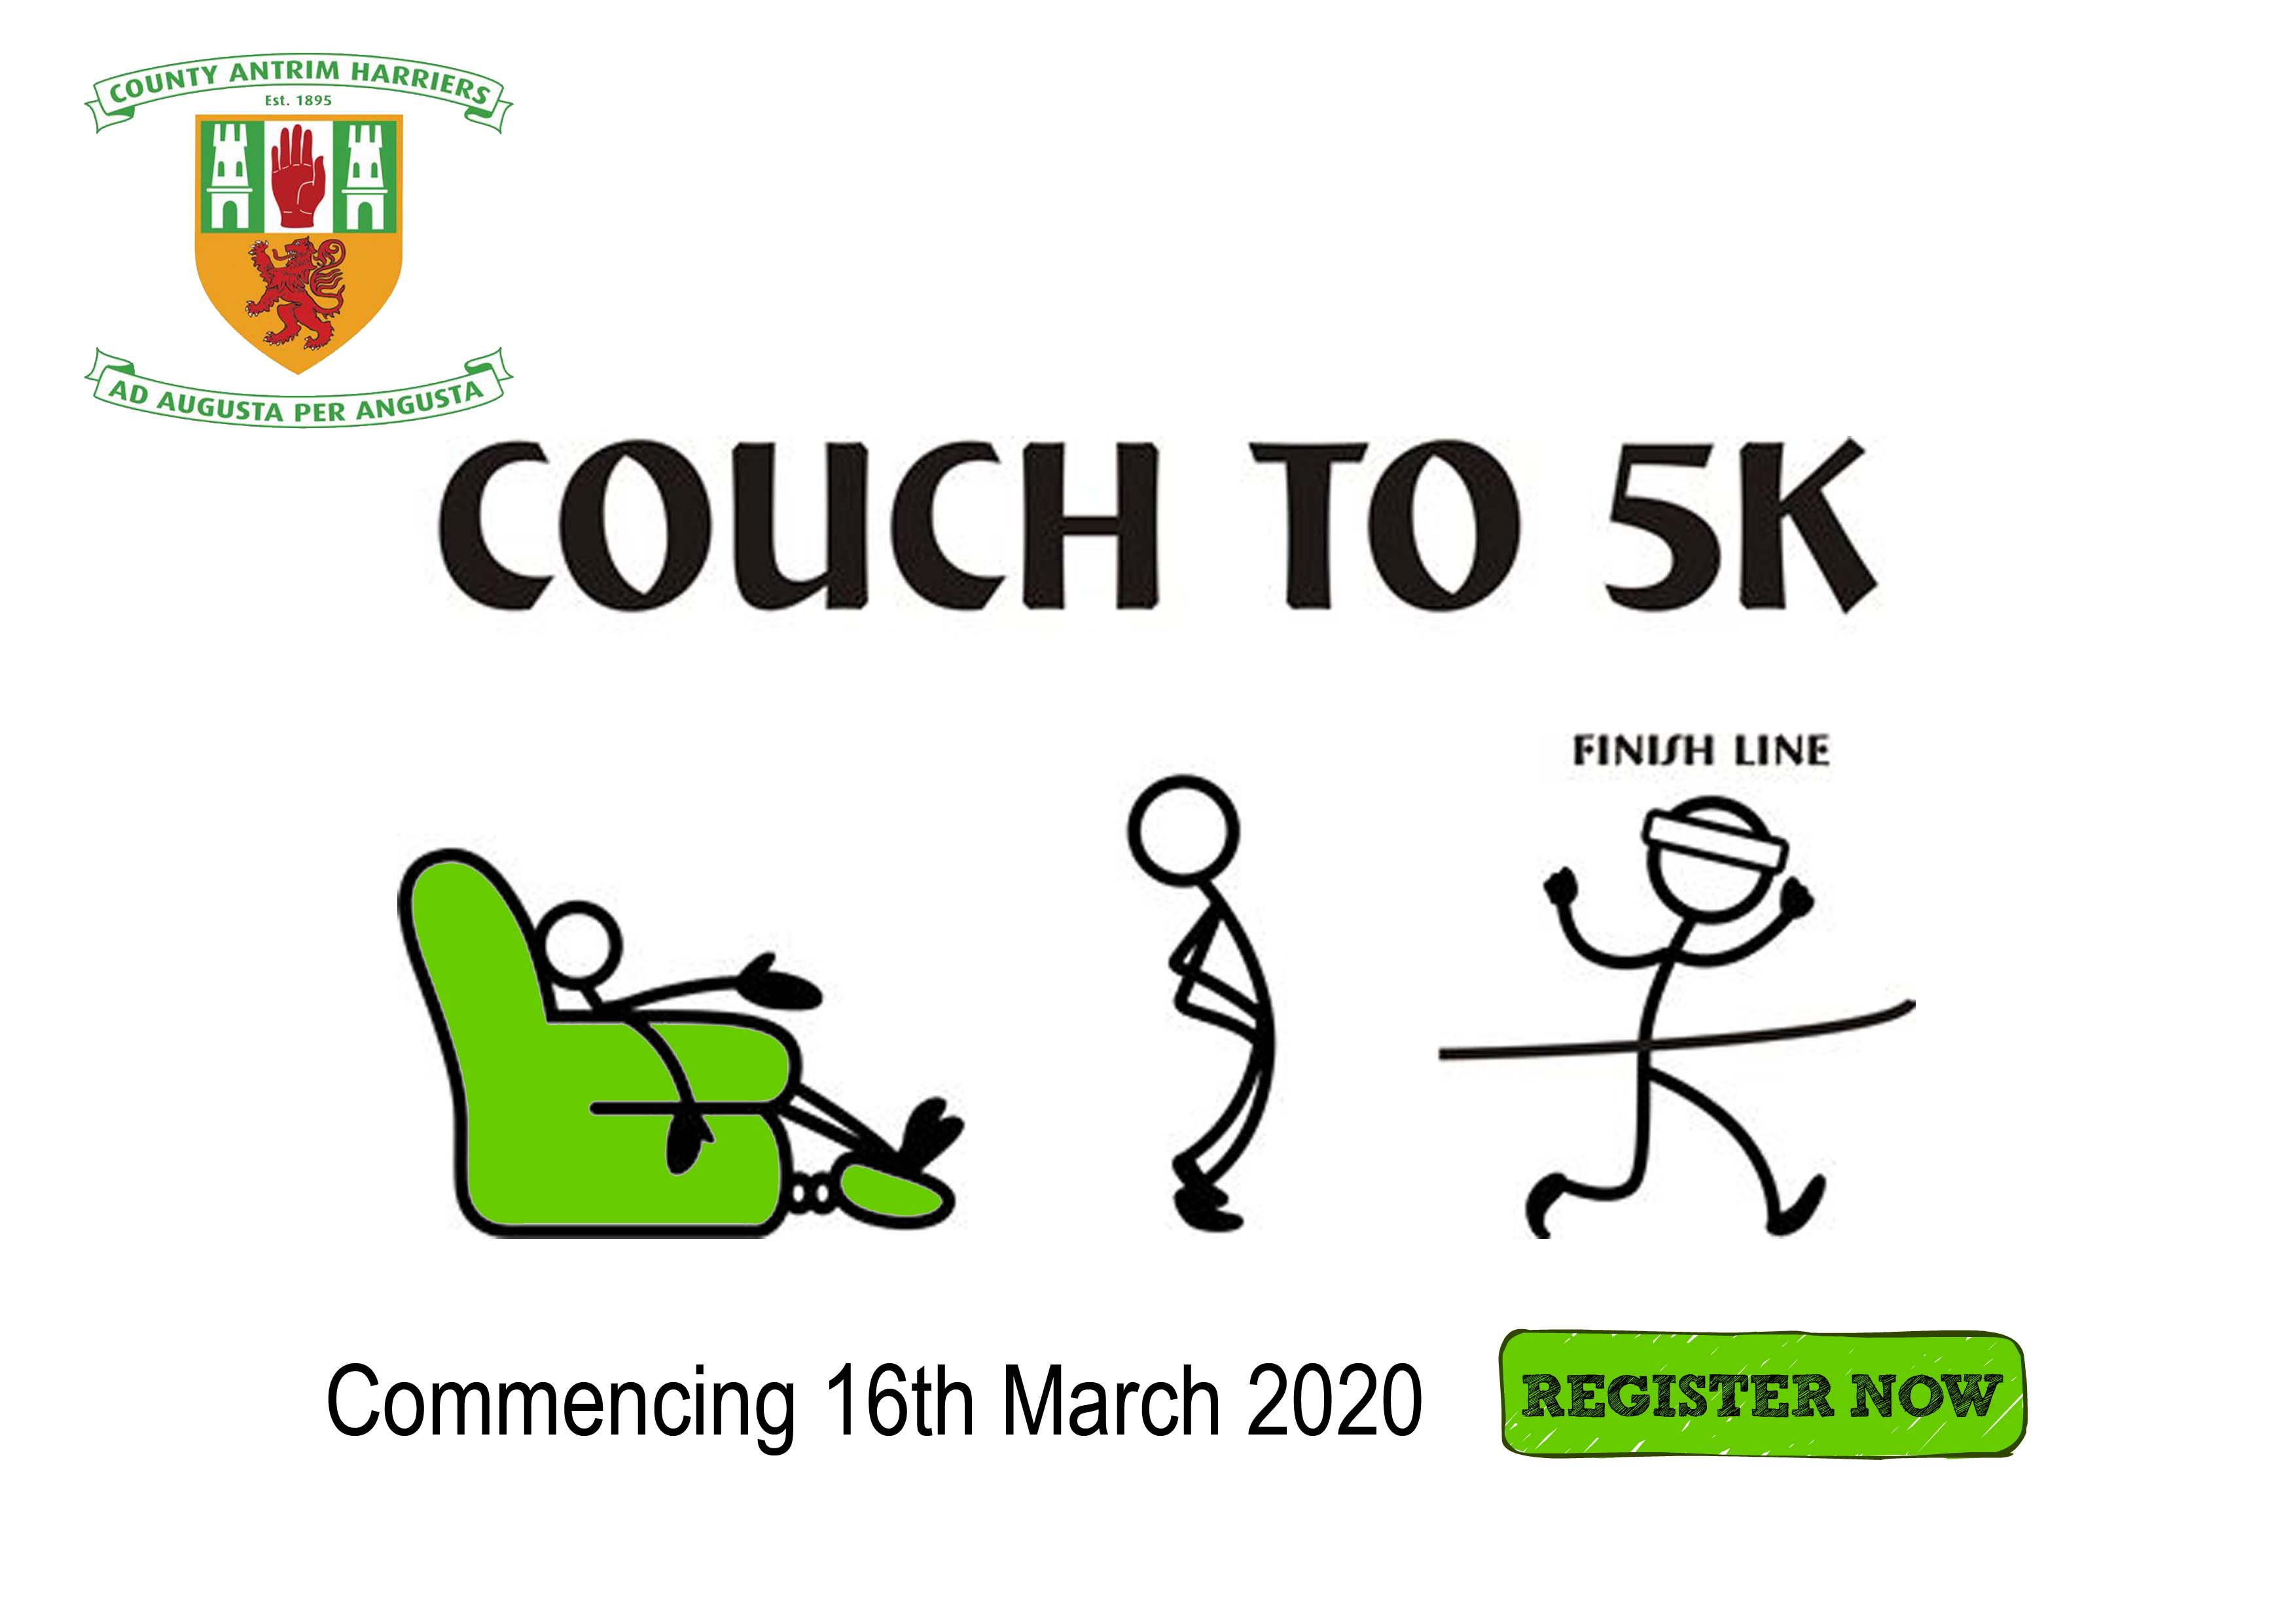 C25K Race/5K fun run 2020